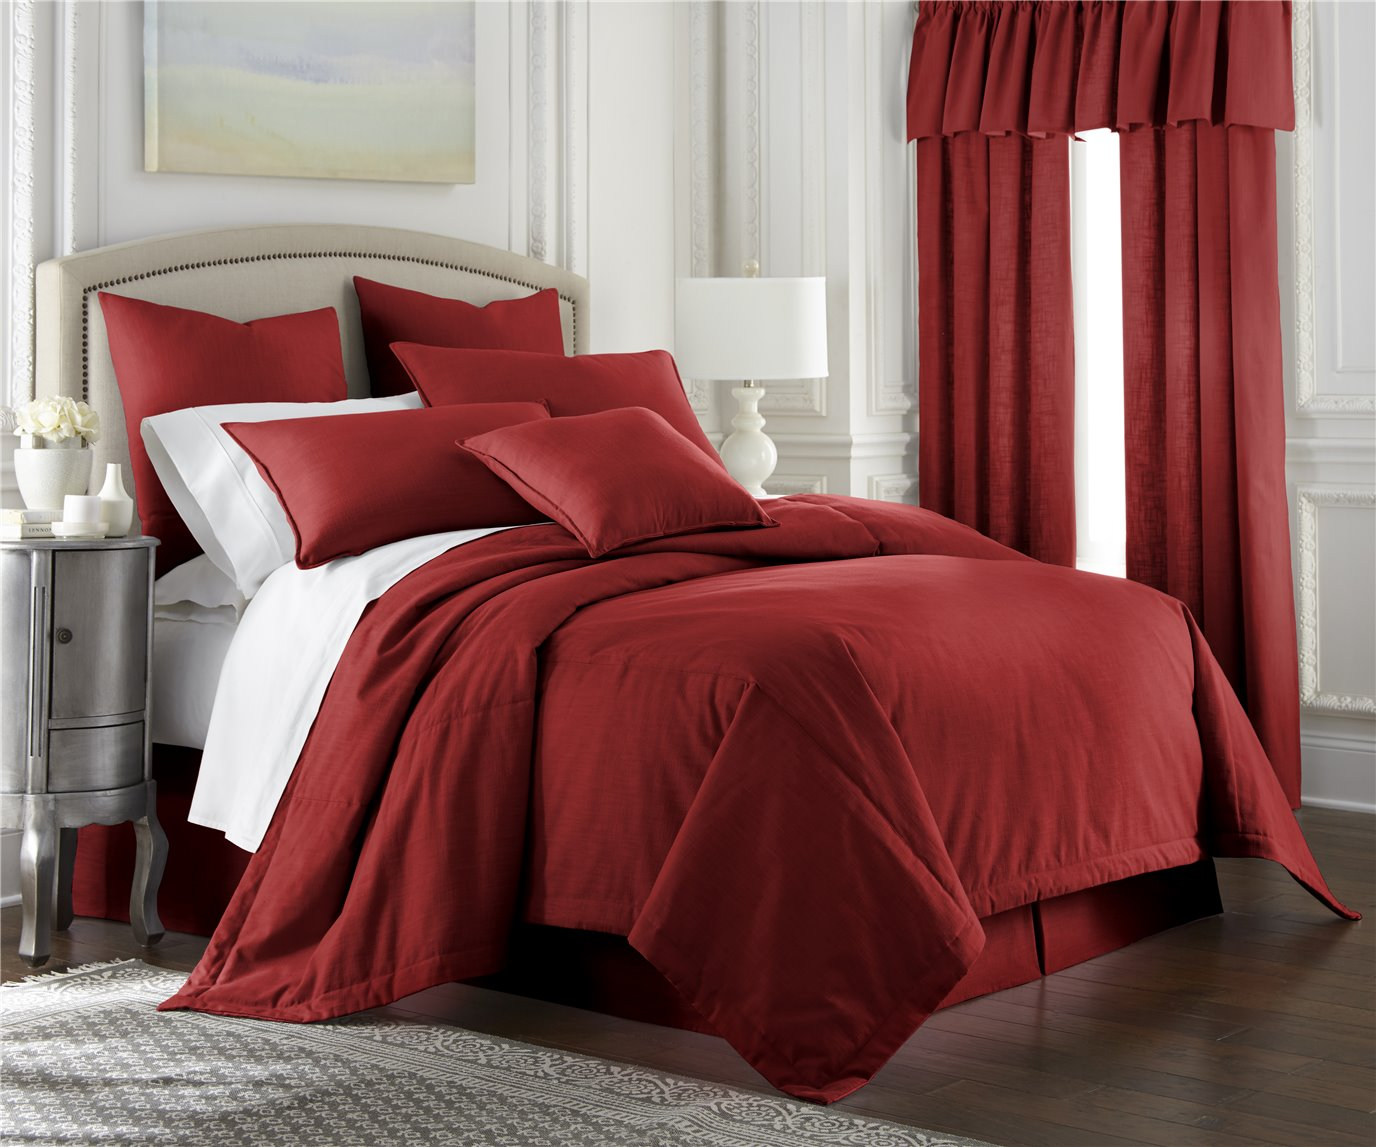 Cambric Red Duvet Cover California King